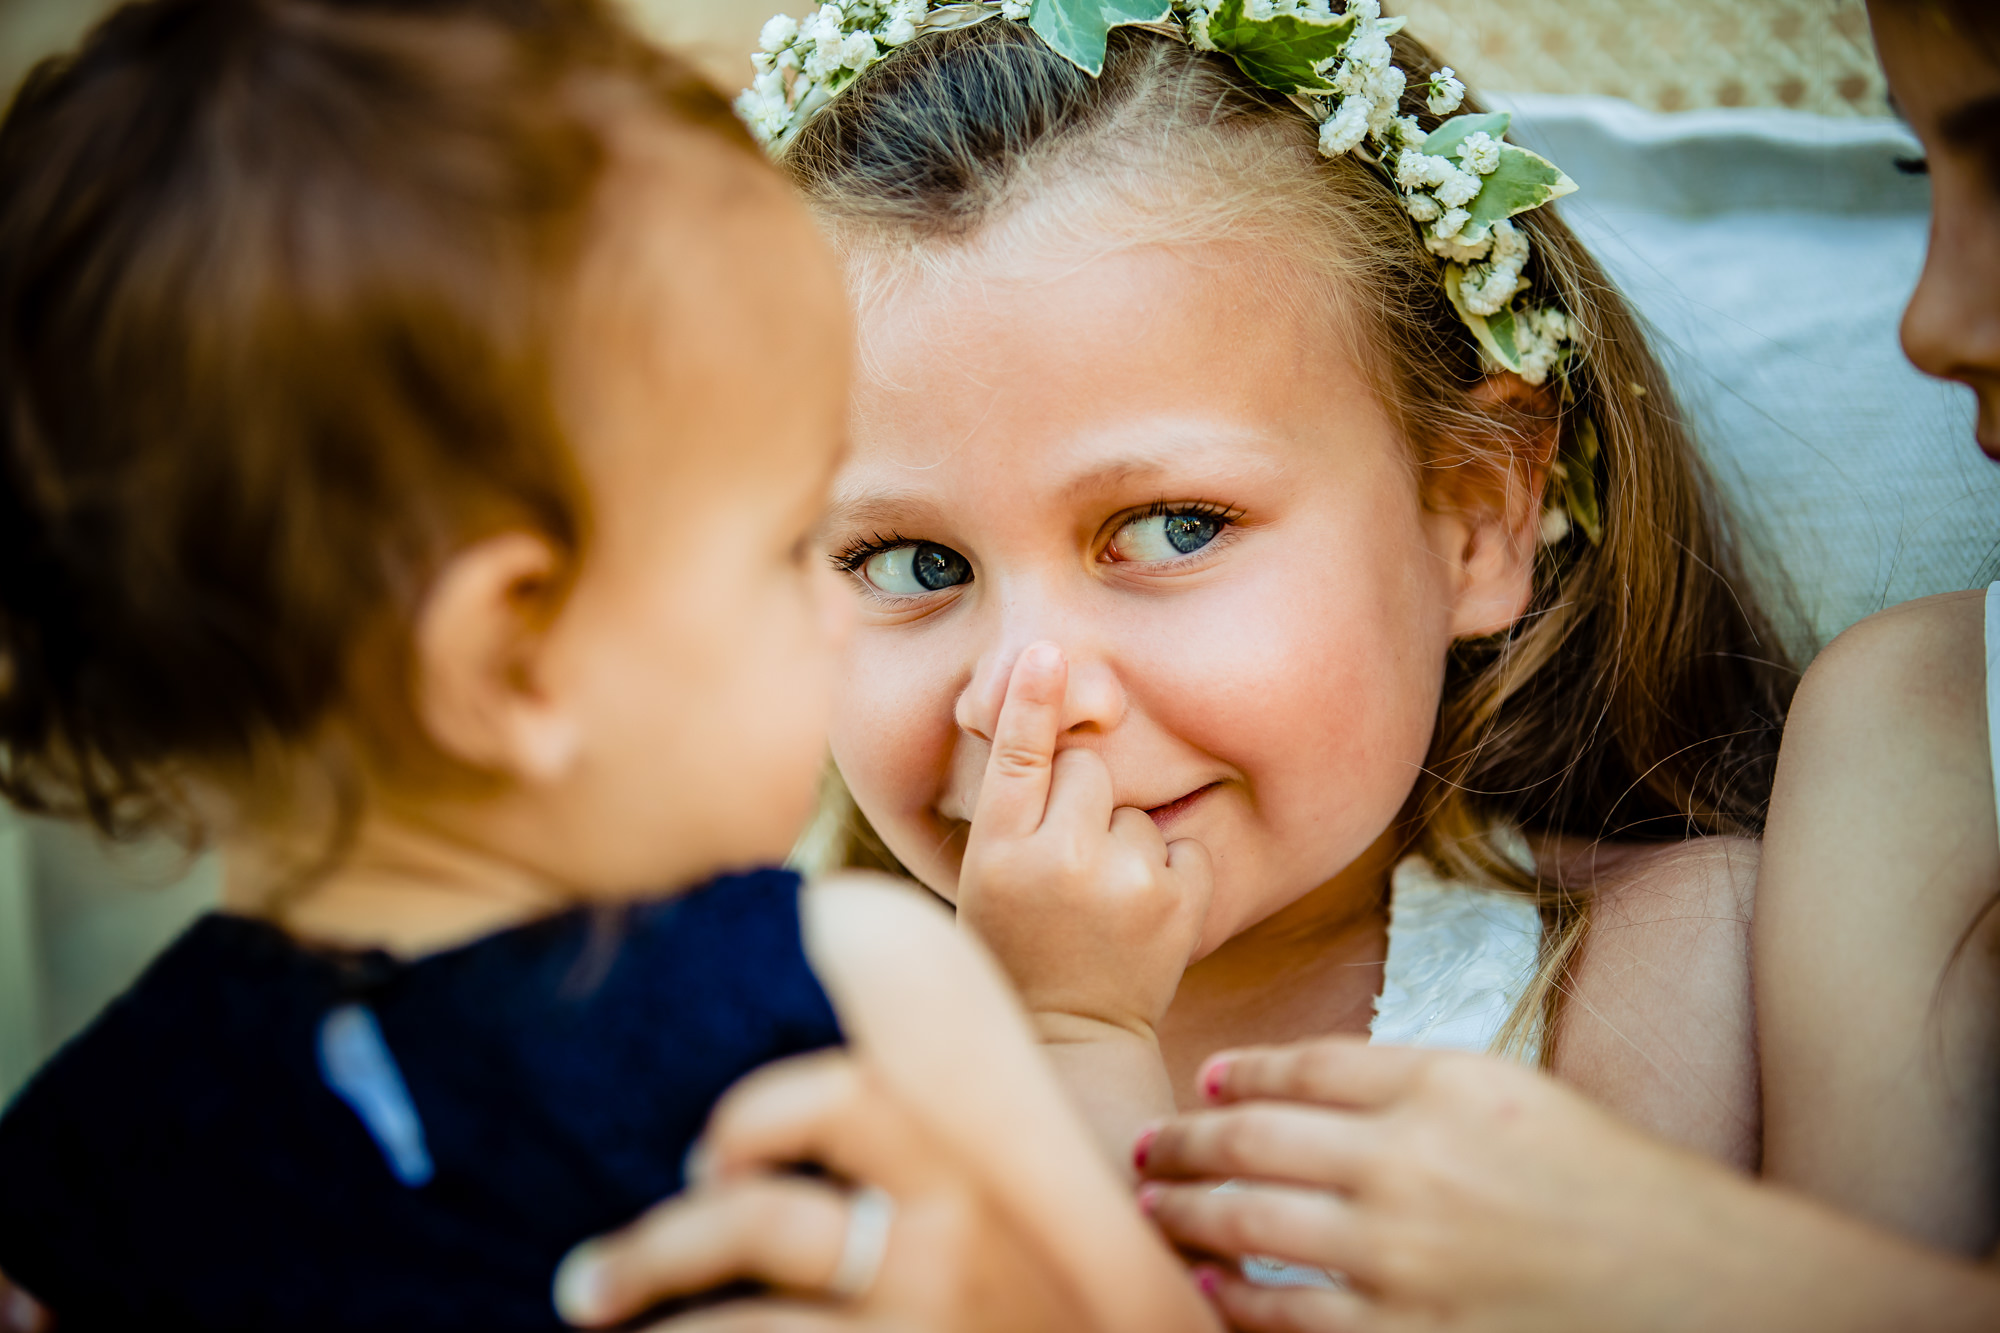 Cute little girl in flower crown pushes on her nose photo by Eppel Photography